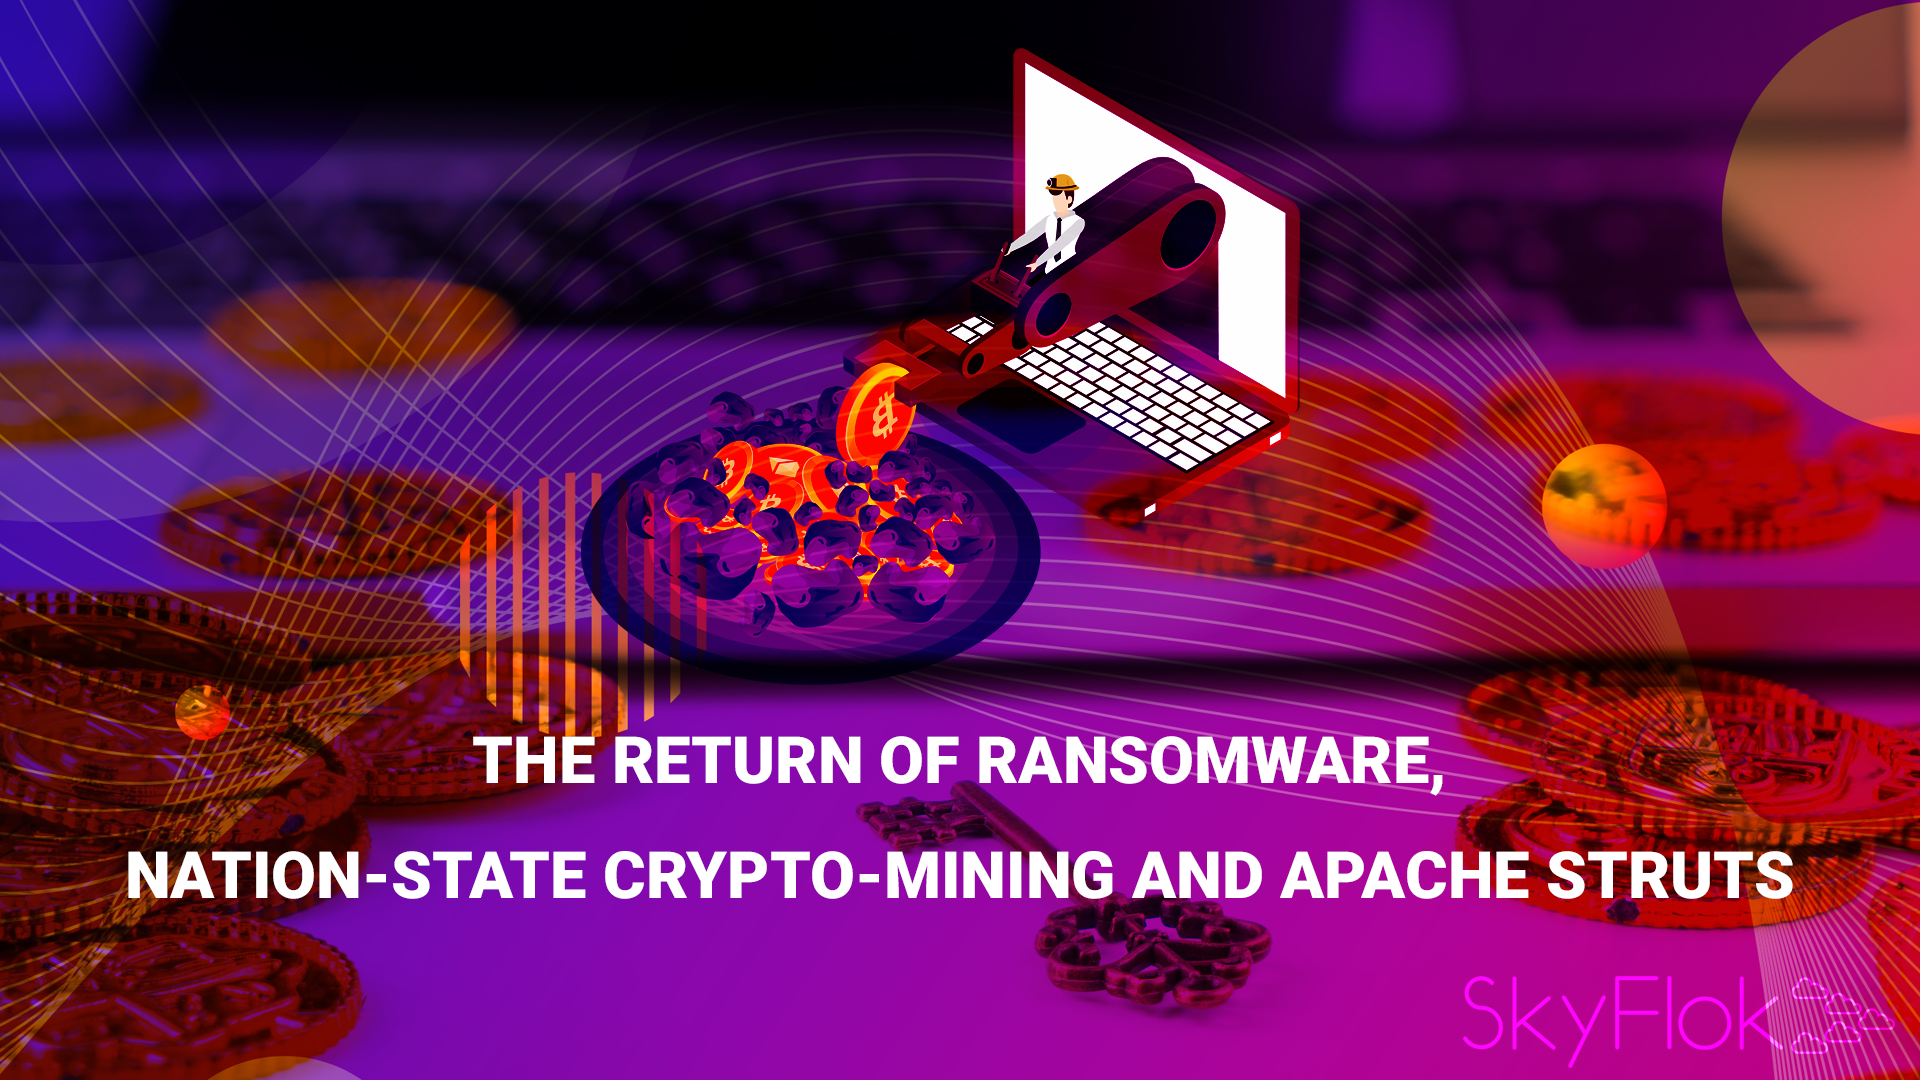 The Return of Ransomware, Nation-State Crypto-Mining and Apache Struts